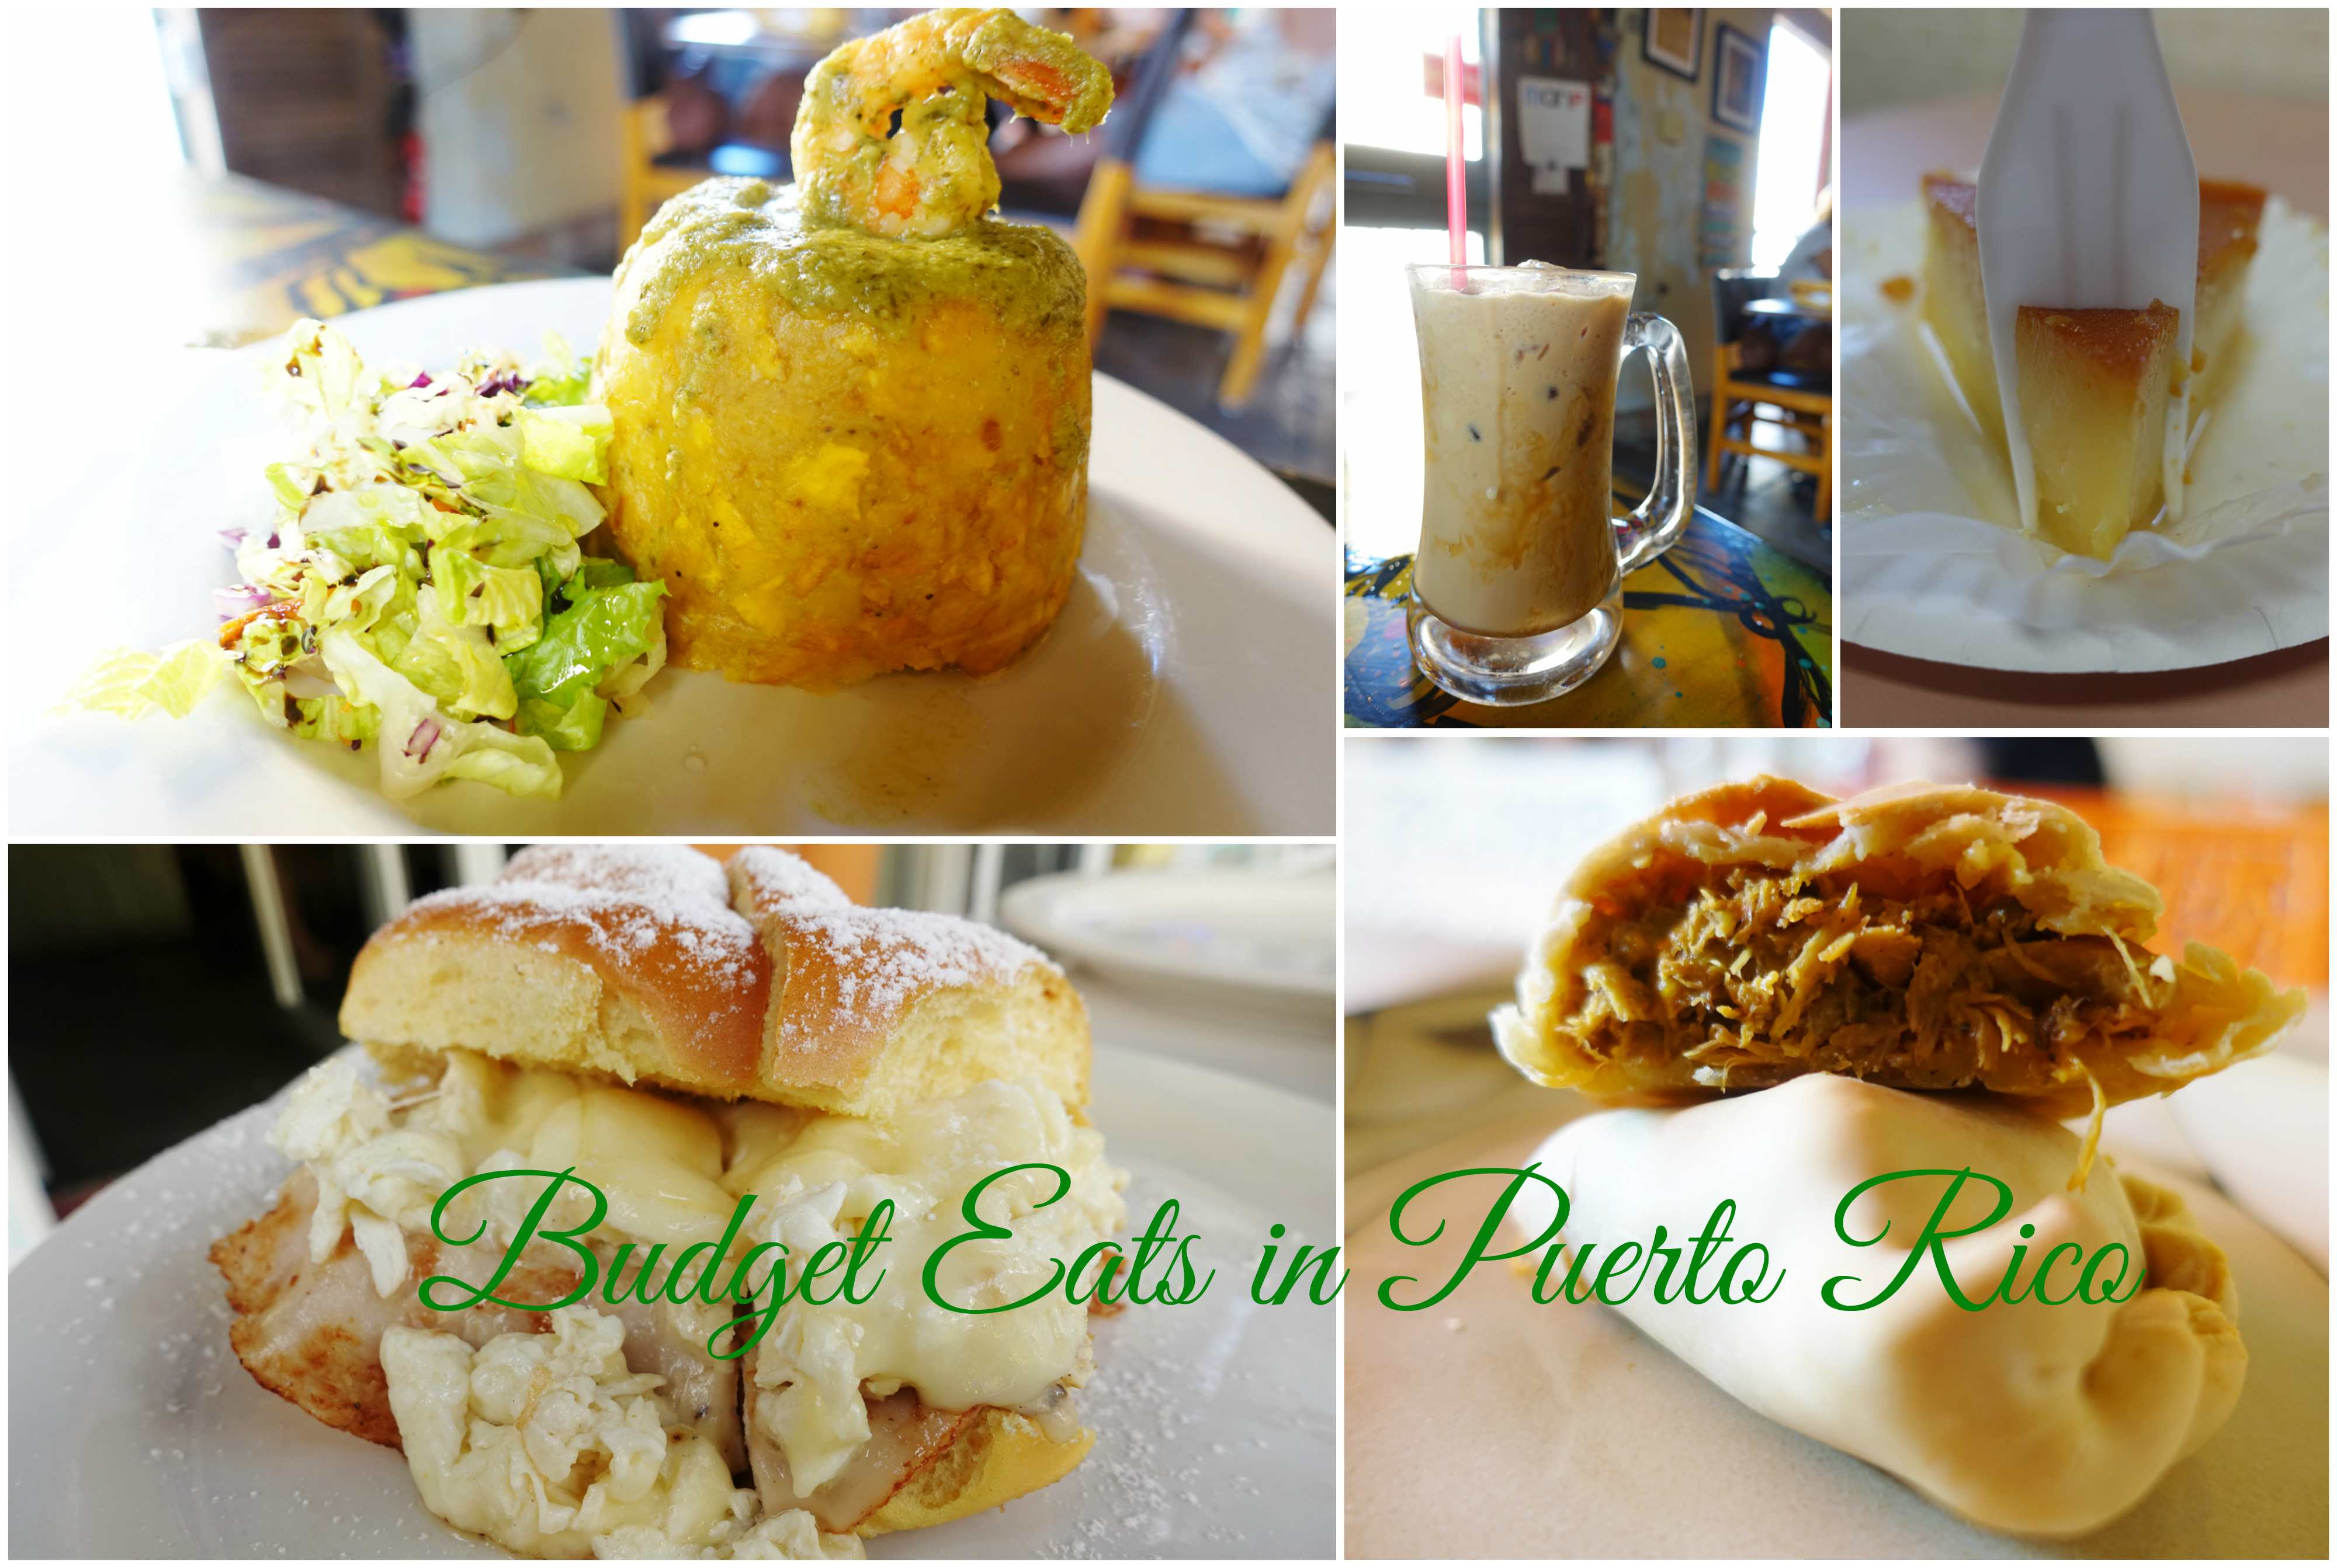 Where to Eat on a Budget in Puerto Rico